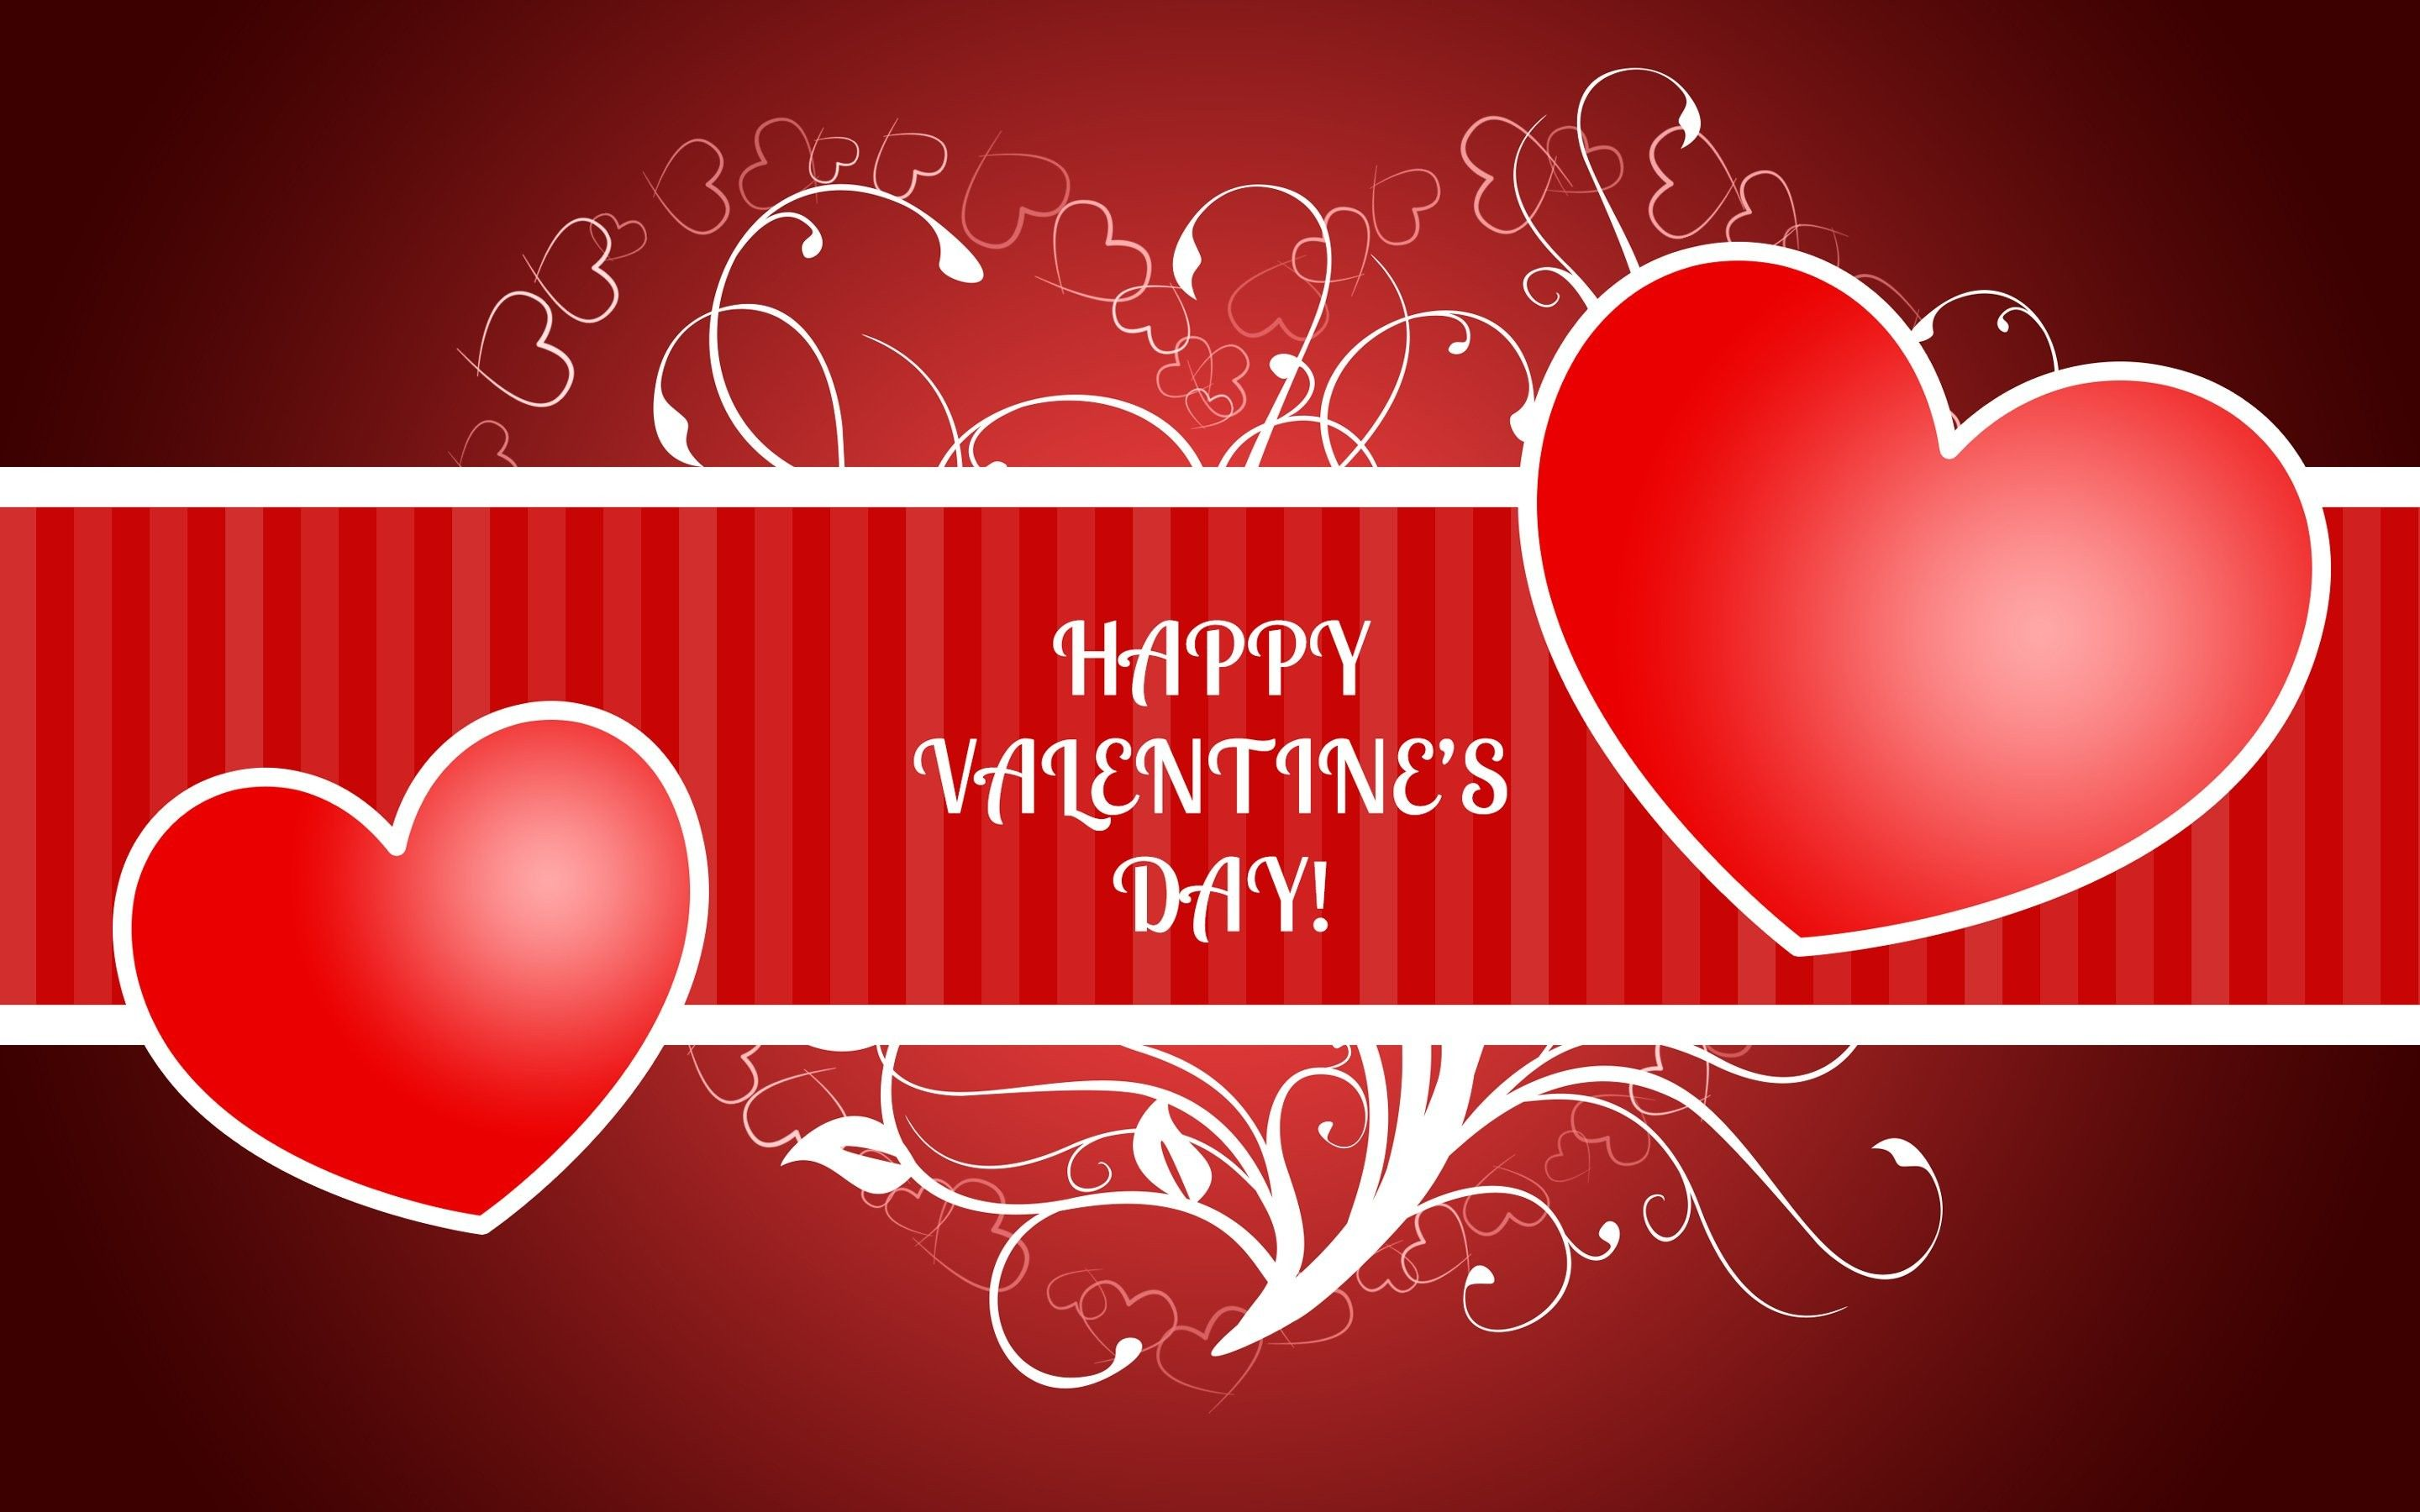 Valentine S Day Hearts Wallpapers Top Free Valentine S Day Hearts Backgrounds Wallpaperaccess